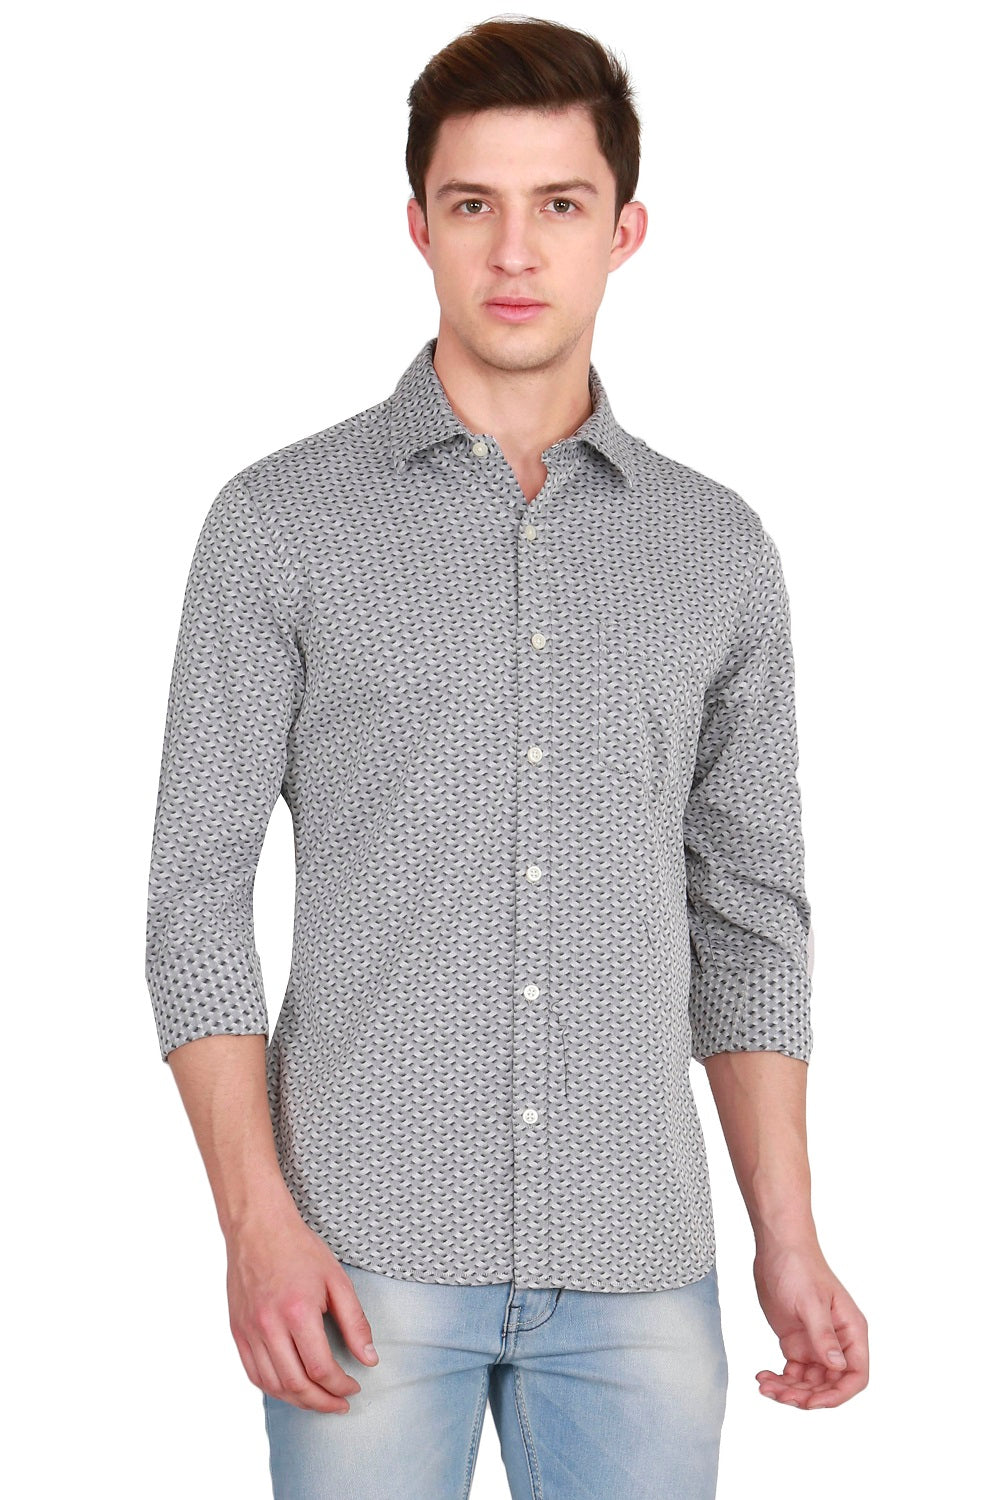 IMYOUNG Grey Solid Slim Fit Casual Shirt